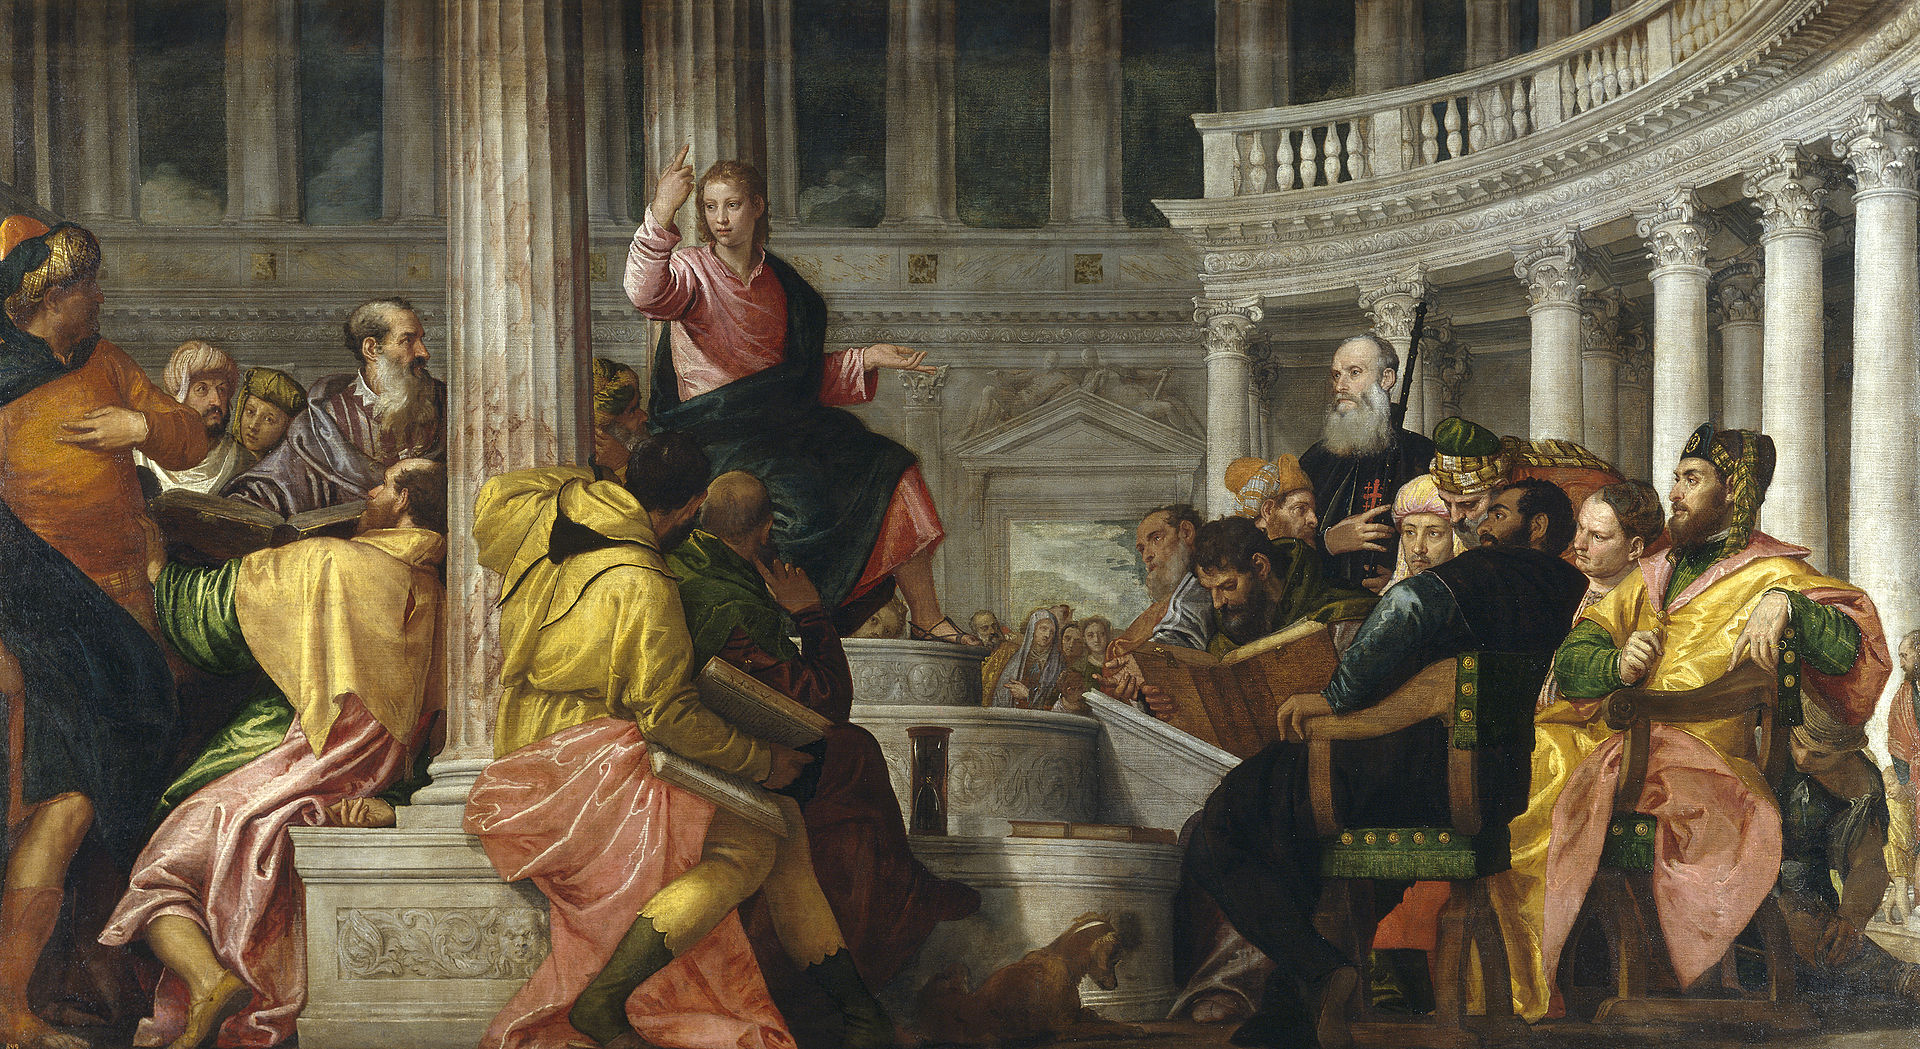 The Finding of Jesus in the Temple | The Fifth Joyful Mystery